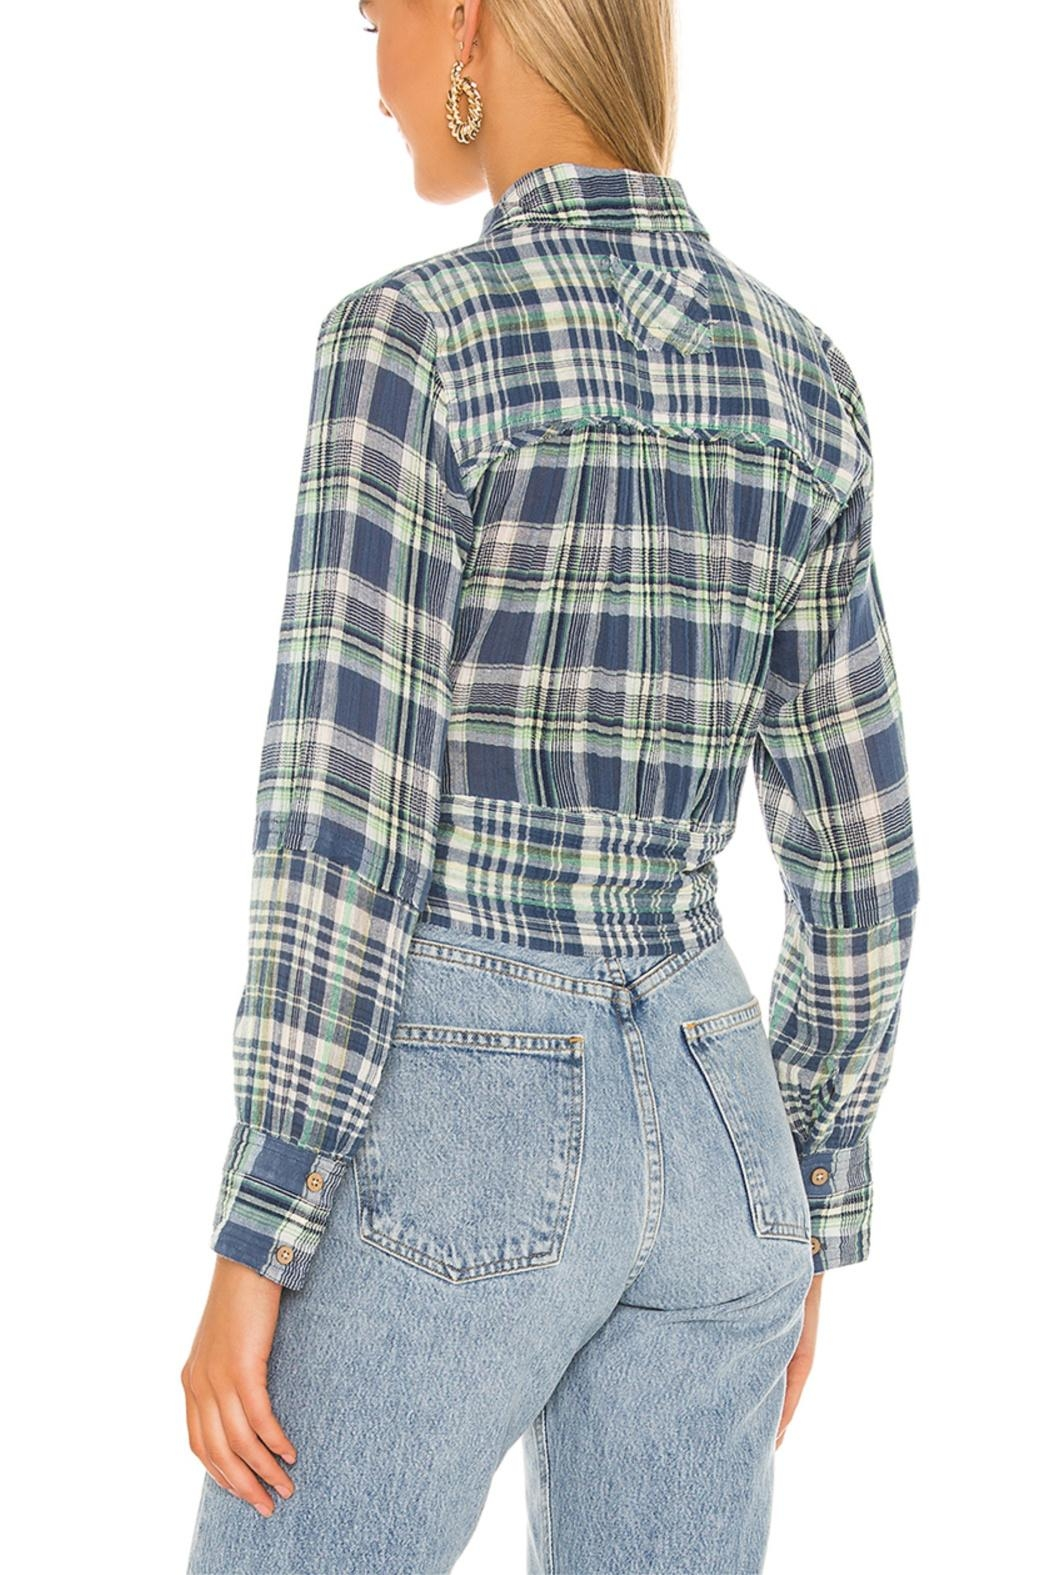 Free People First Bloom Plaid Top - Front Full Image